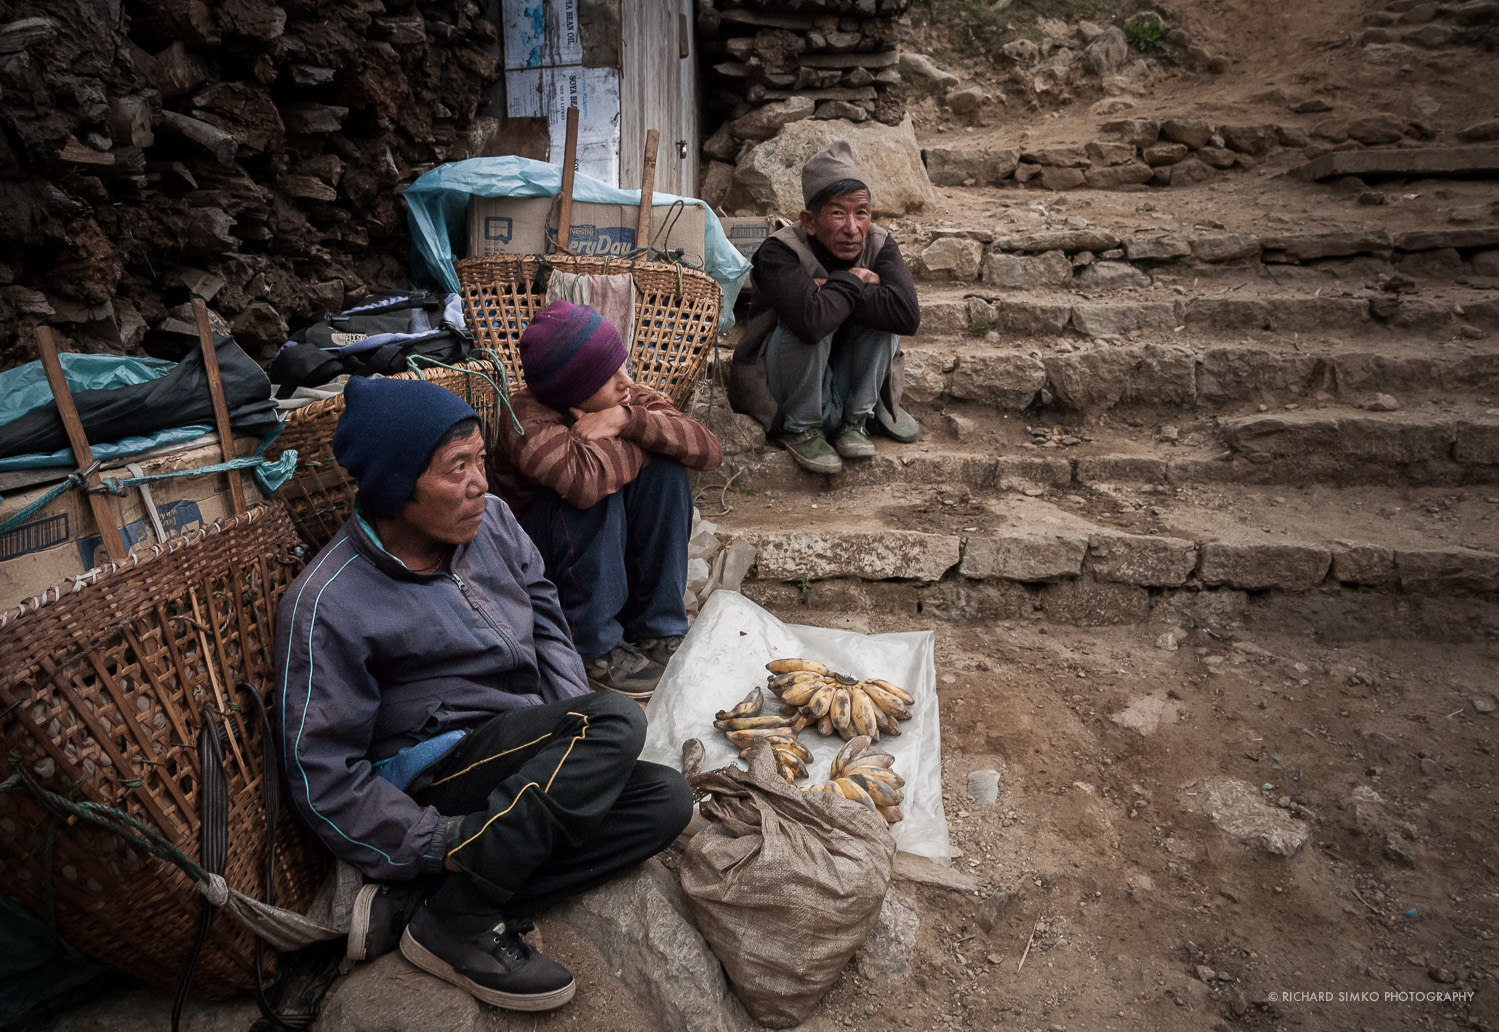 """Outskirts of Namche Bazaar market. Few porters trying to sell lst remaining goods before heading of to their home village. Namche Bazaar is the biggest village in Everest Khumbu region and is comonly refered to as """"Sherpa Capital"""". It is located at  3,750 m altitude and serves as resting and acclimatisation place for trekkers and climbers to Everest region."""